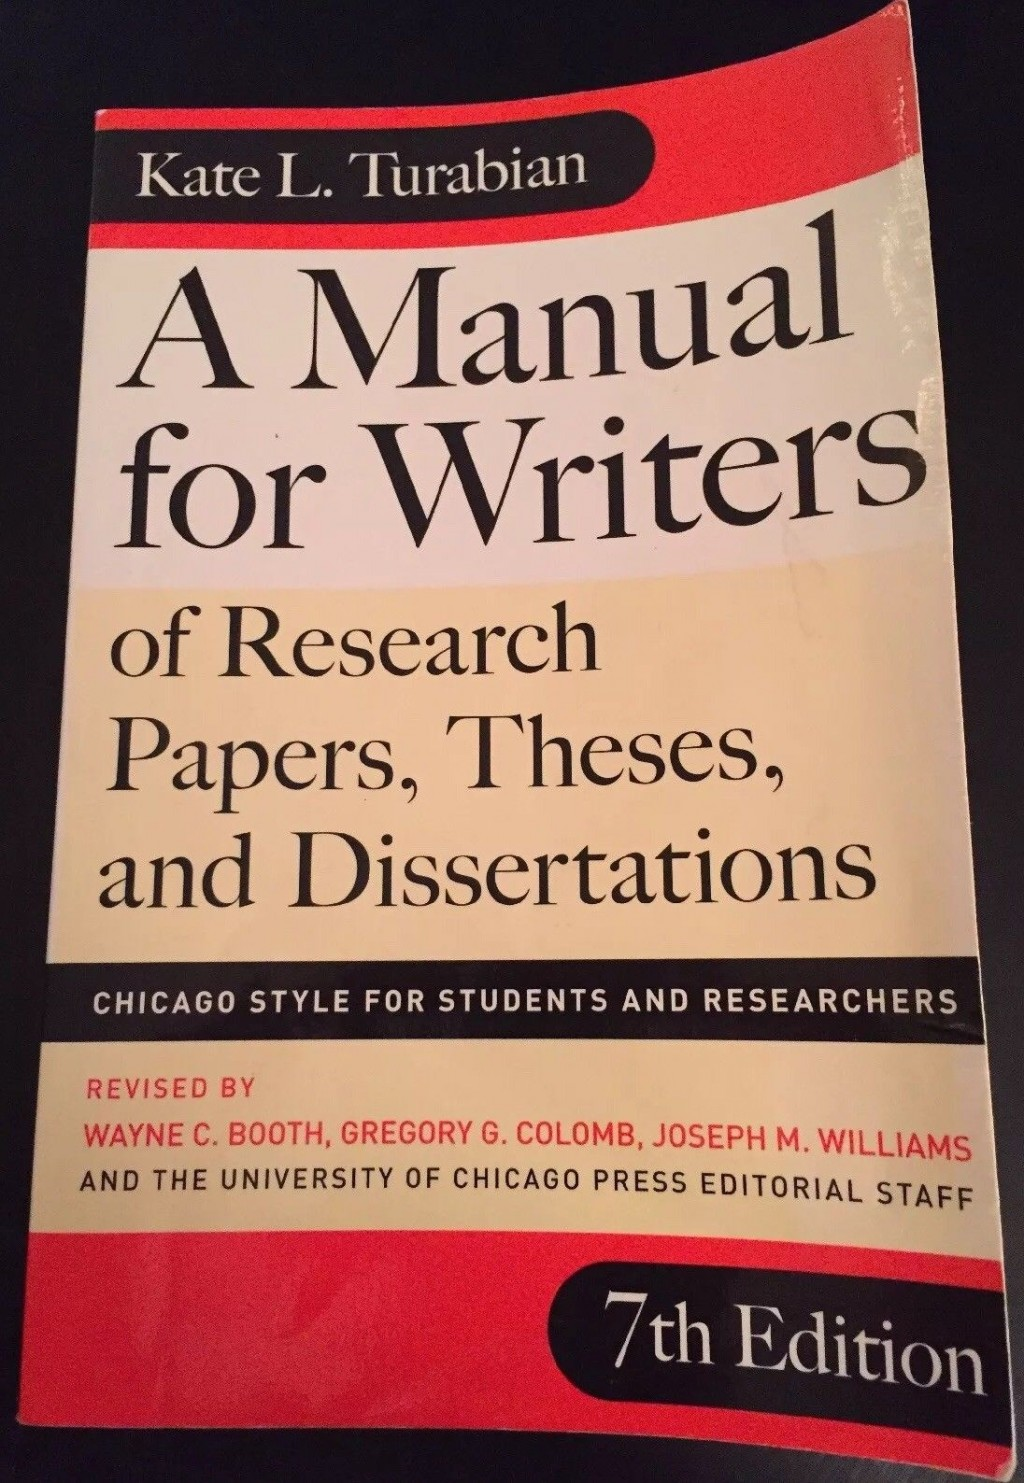 013 S L1600 Research Paper Manual For Writers Of Papers Theses And Sensational A Dissertations 8th Edition Pdf Eighth Large